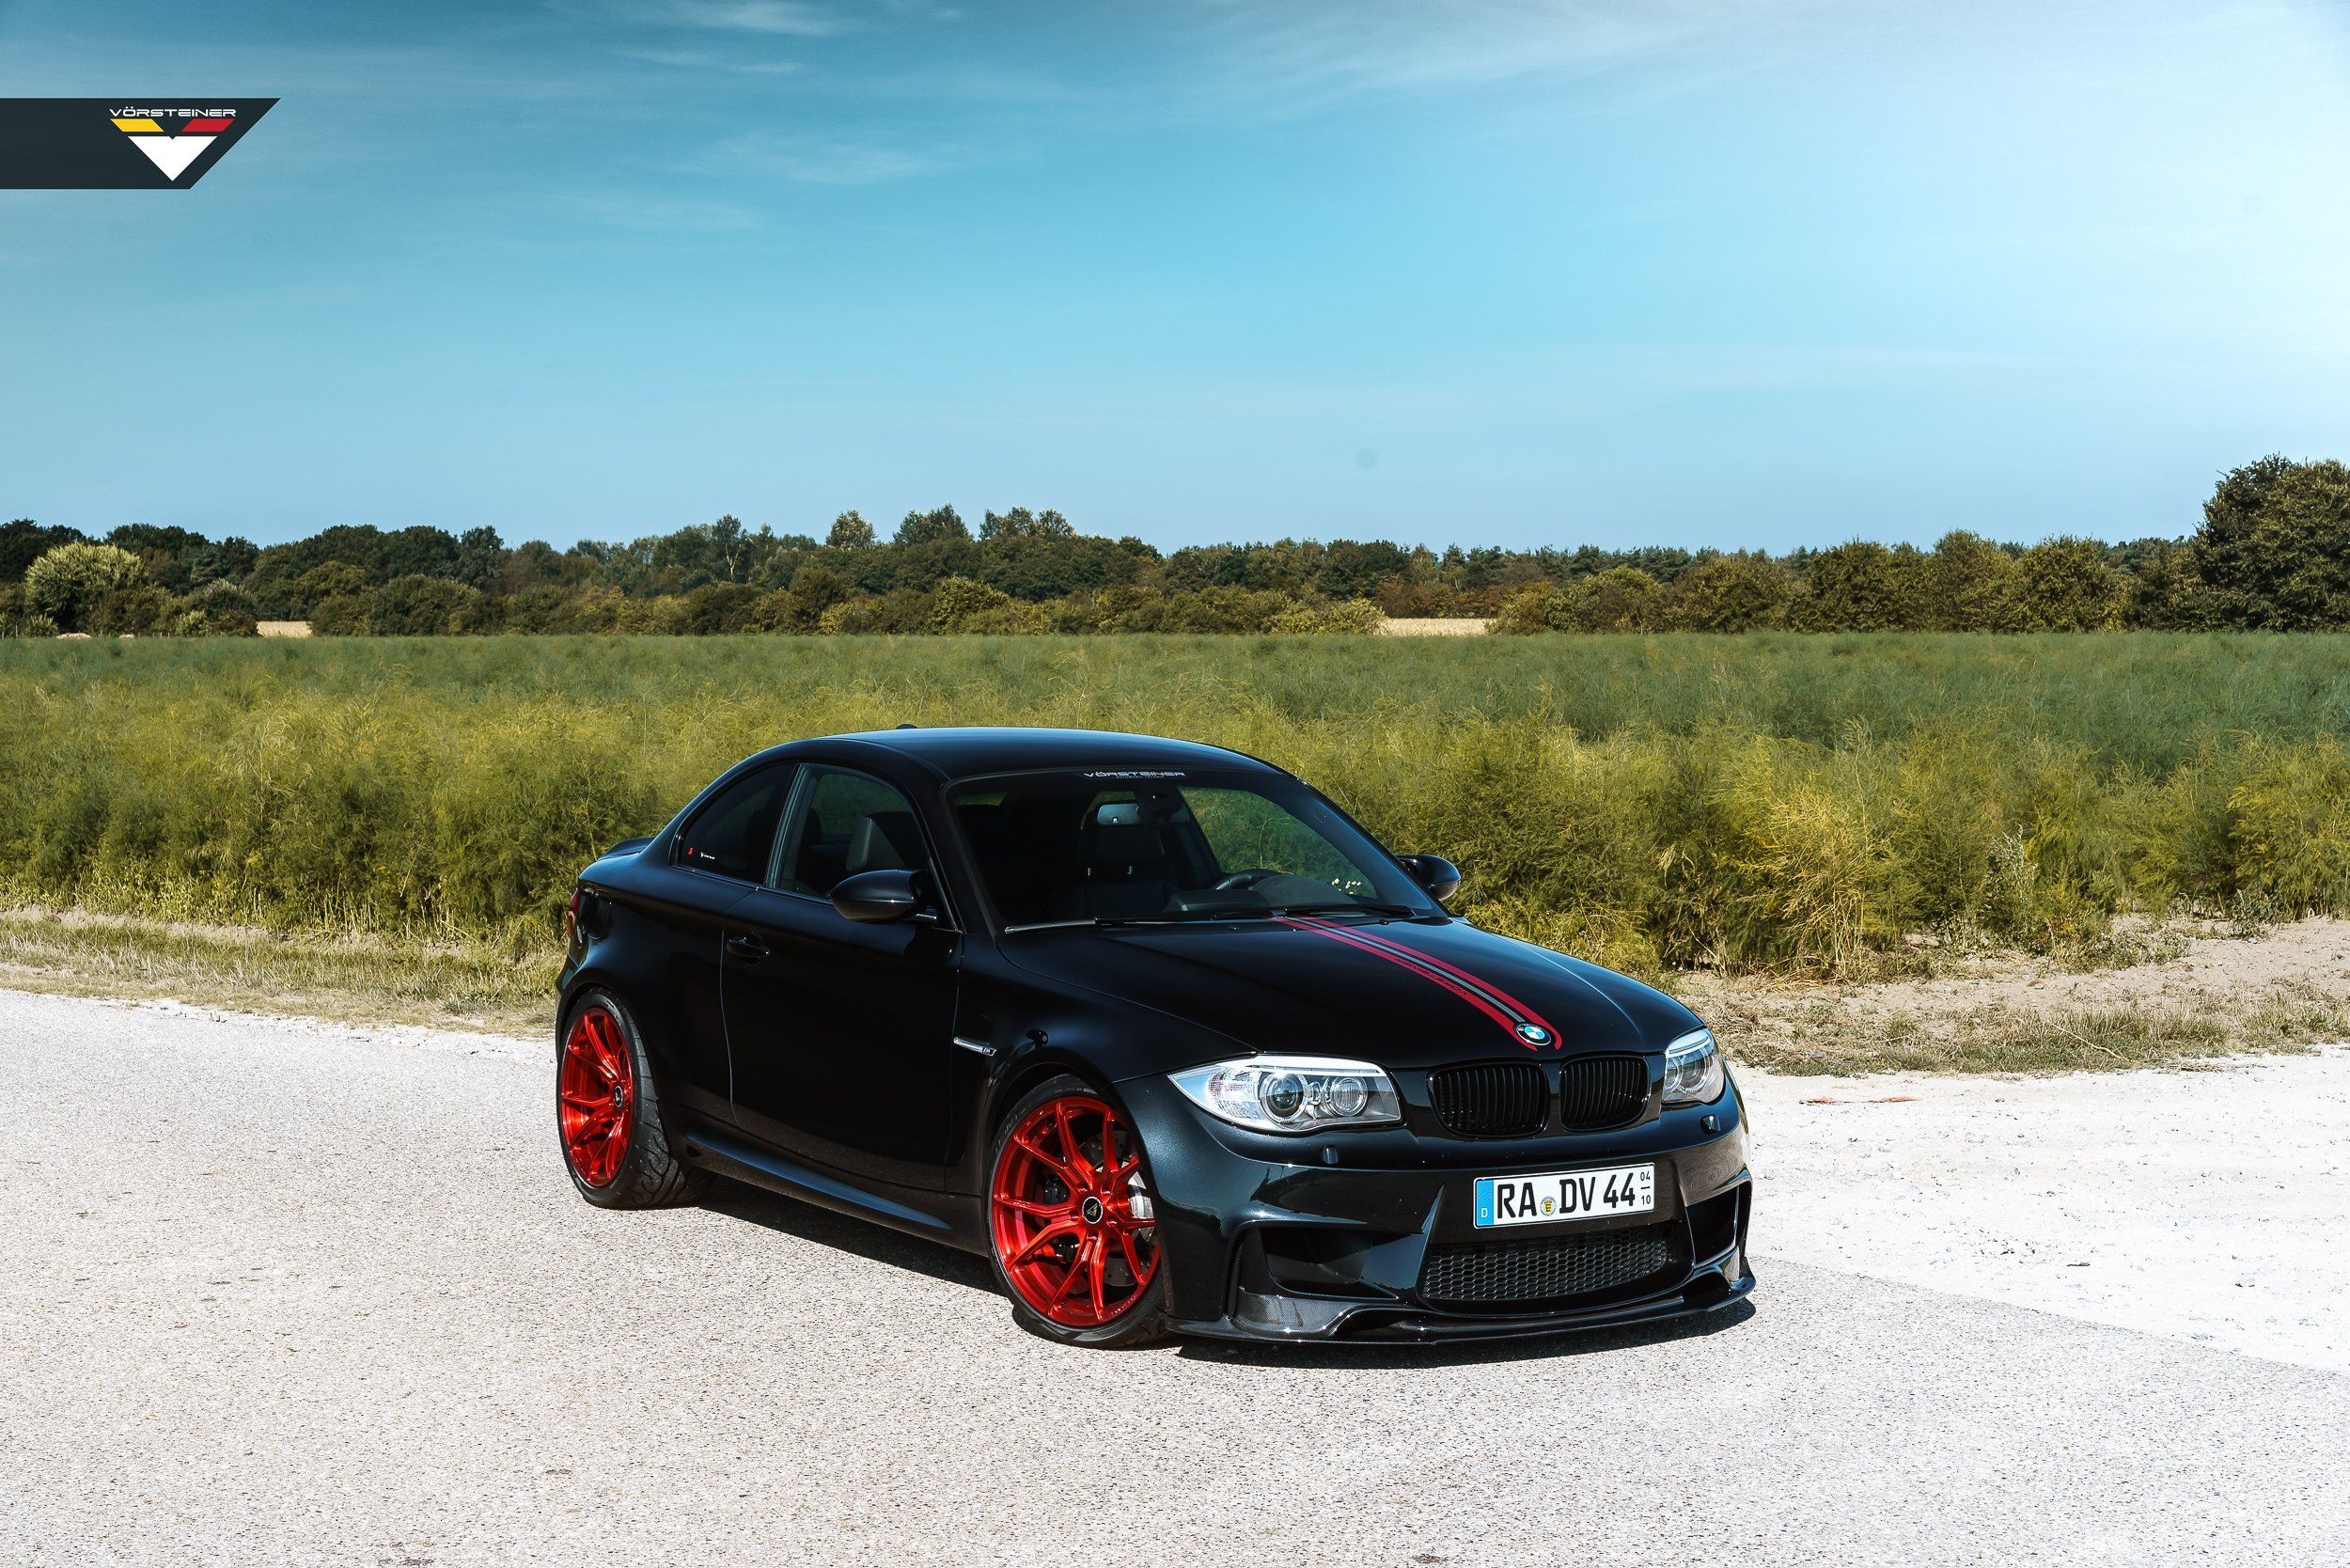 Custom Black Matte Bmw 1 Series Grabs Attention With Red Custom